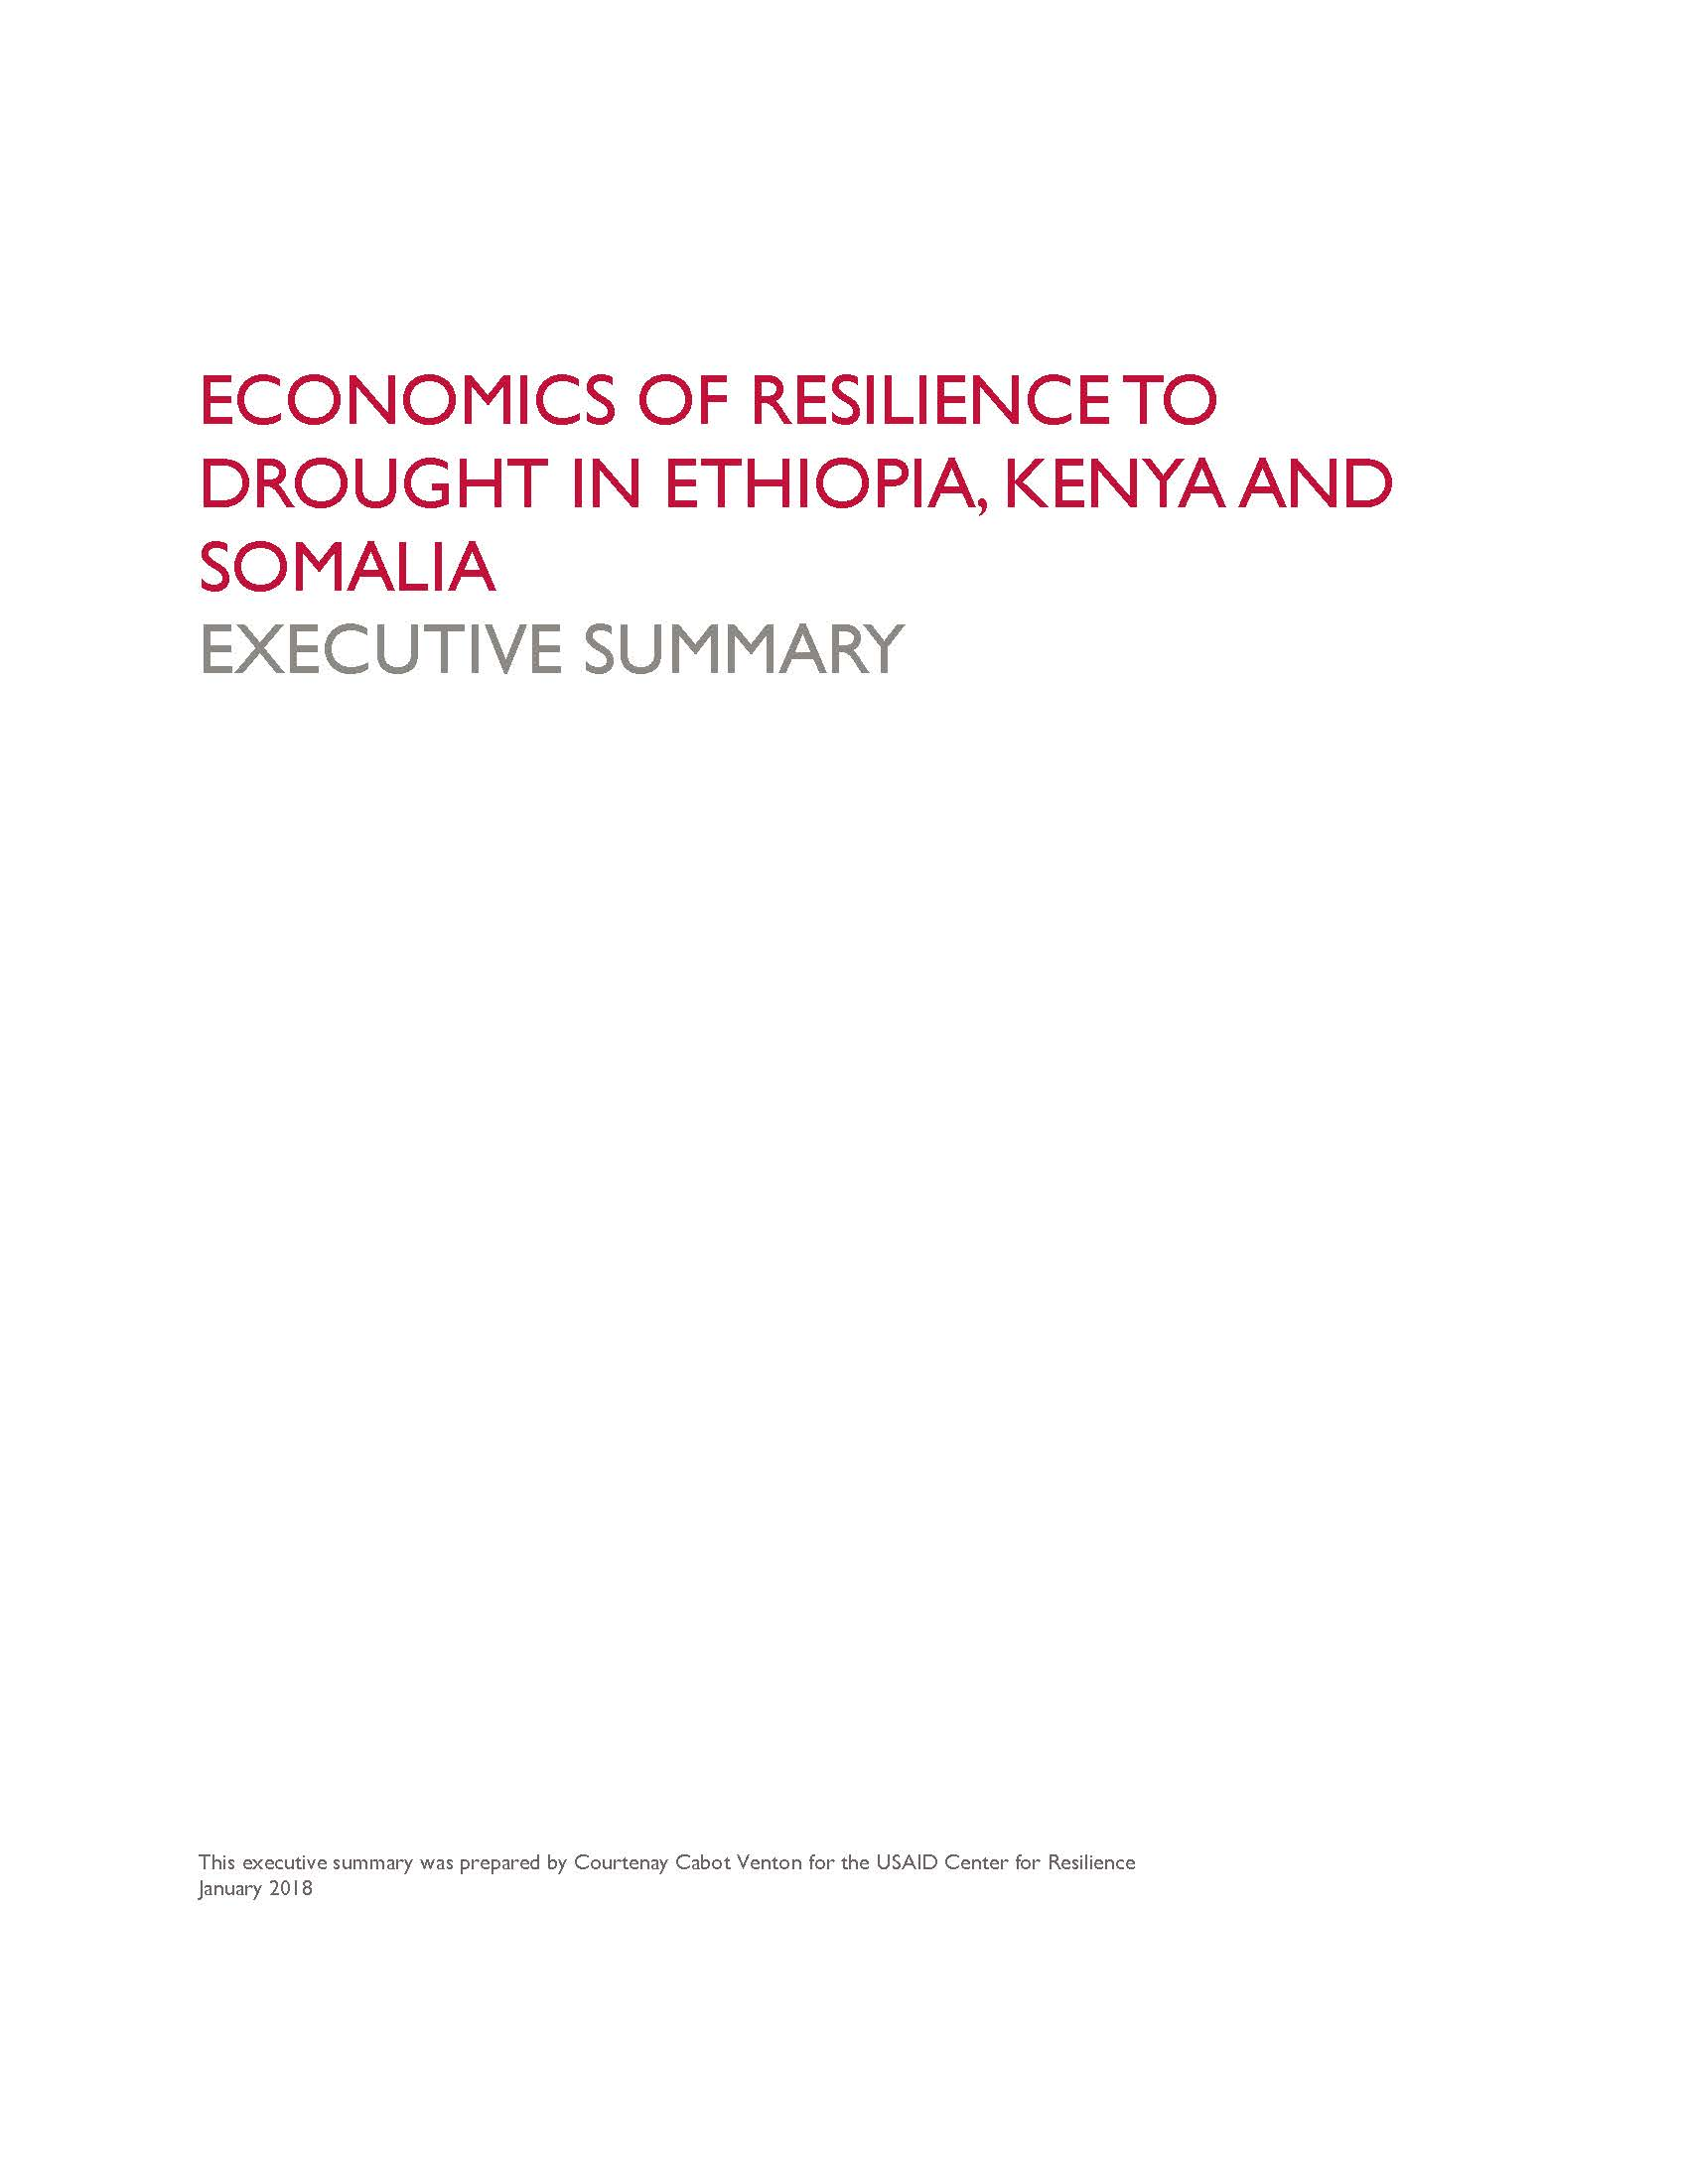 Economics of Resilience to Drought: Executive Summary